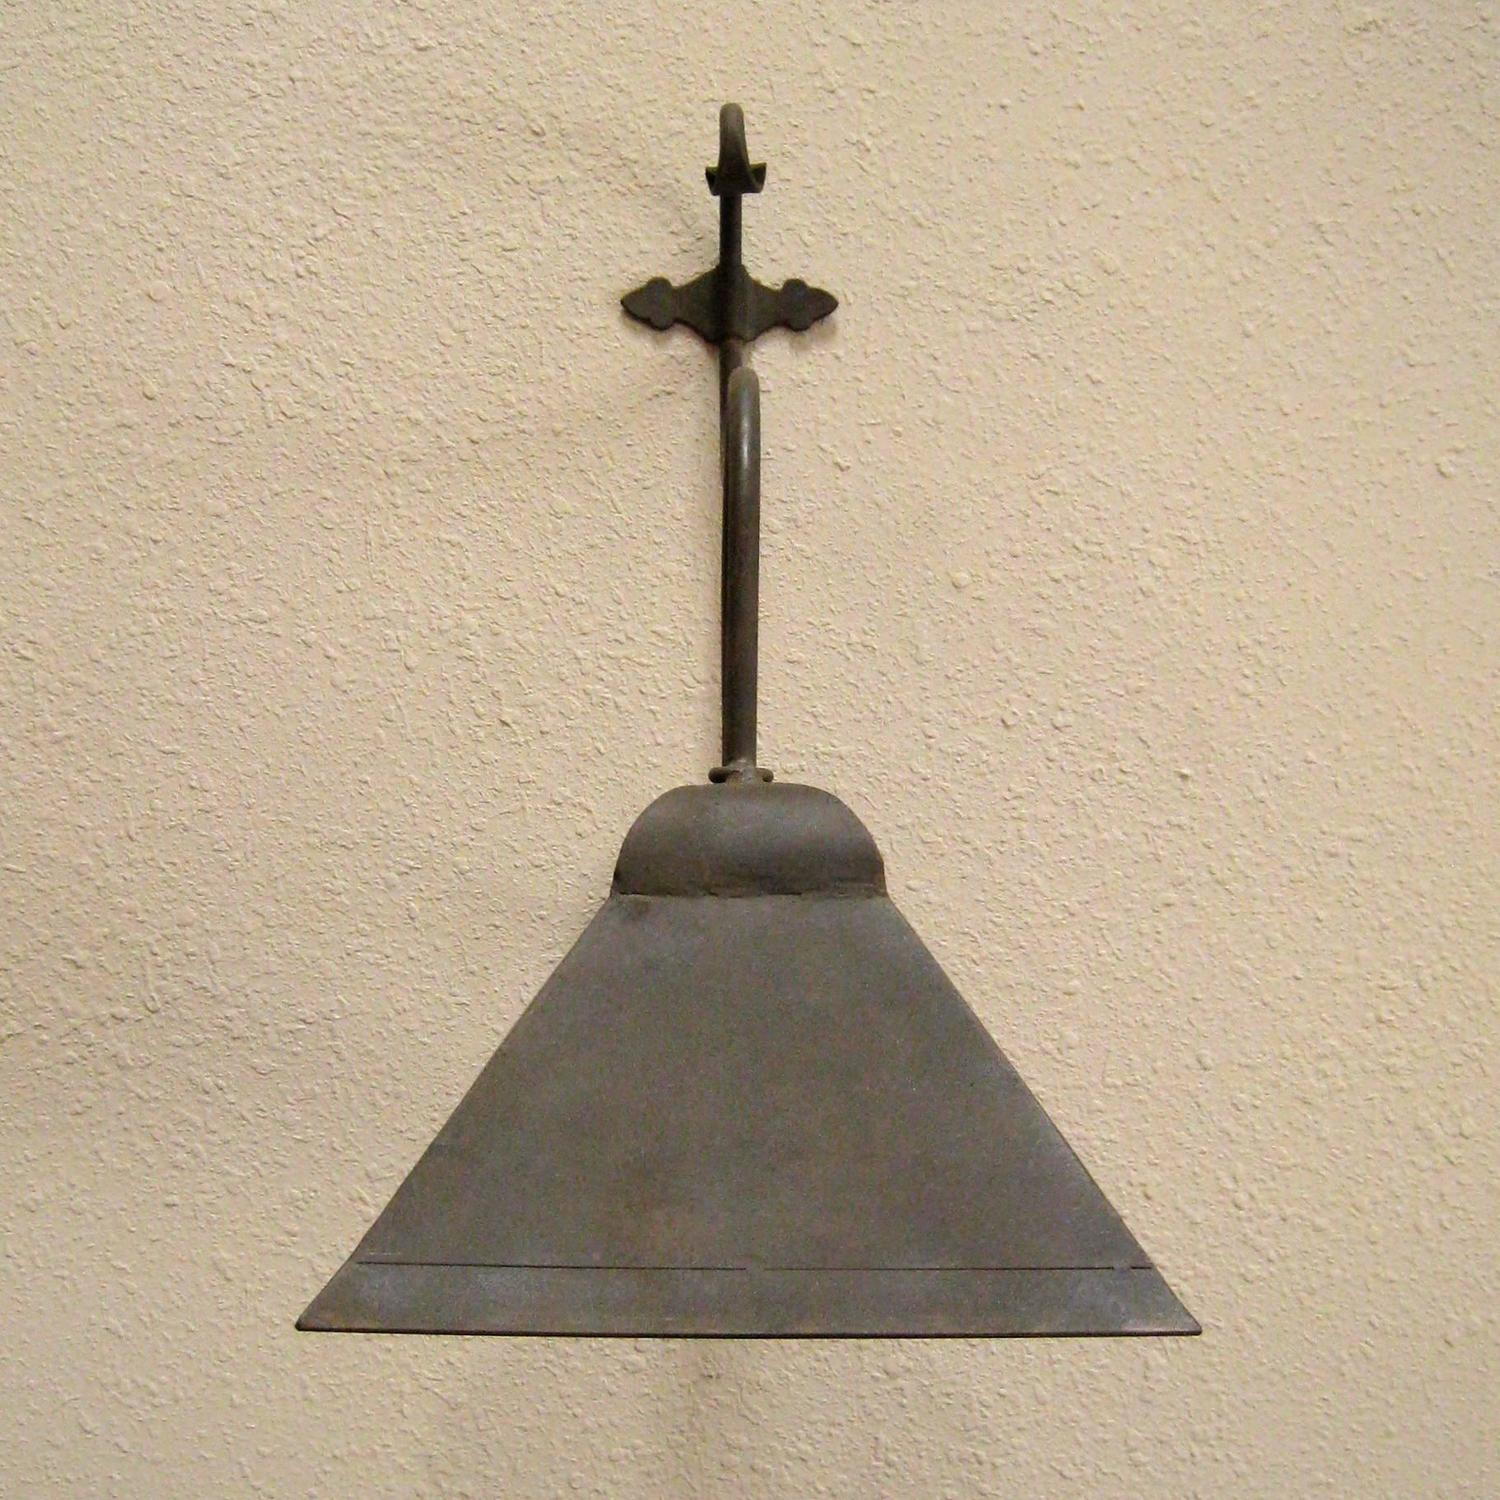 Hooded Led Wall Ground Light: Iron Exterior Hooded Wall Sconce For Sale At 1stdibs